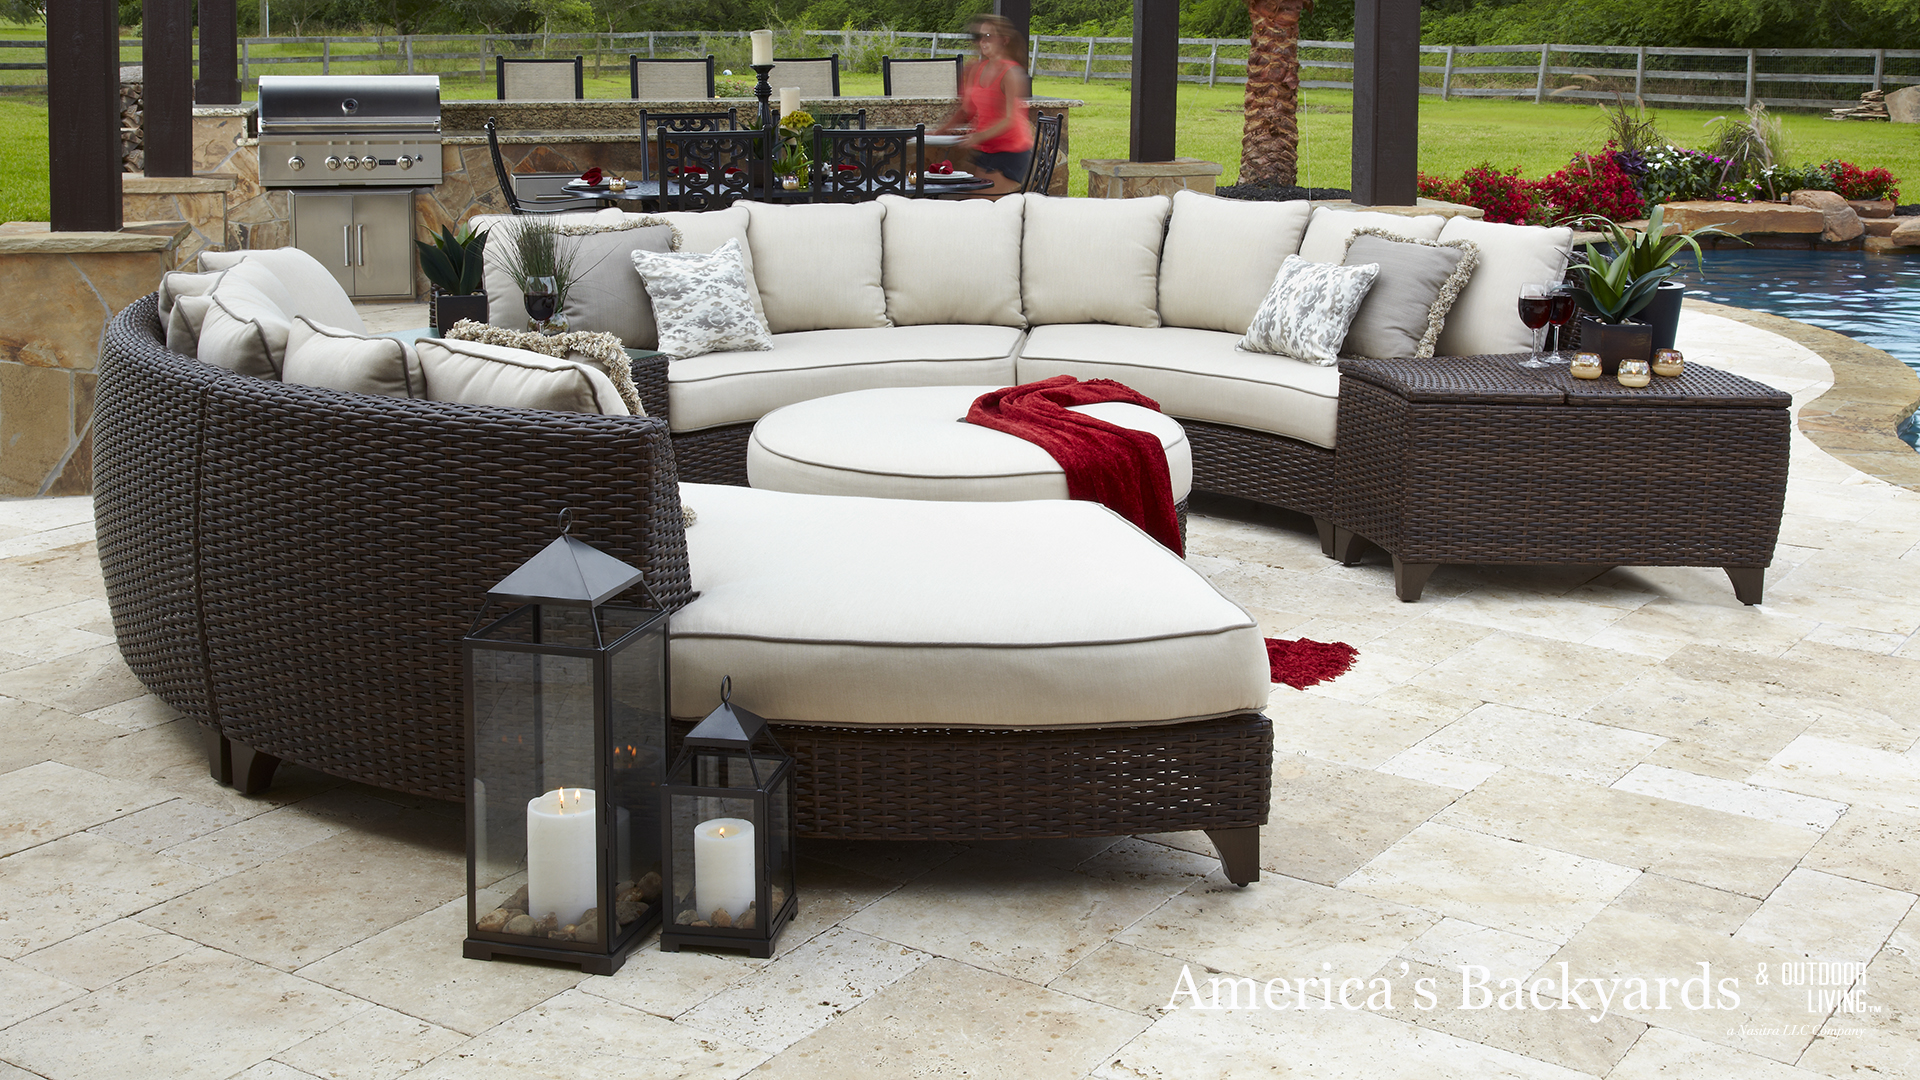 blue clearance sectionals furniture when patio to go sofa home relaxing chief created you interior lounge design stressed want sets the resin out caring with so by room outdoor tired professionals nice or your chaise architect do wicker and enjoy youre ideas can for a soothing